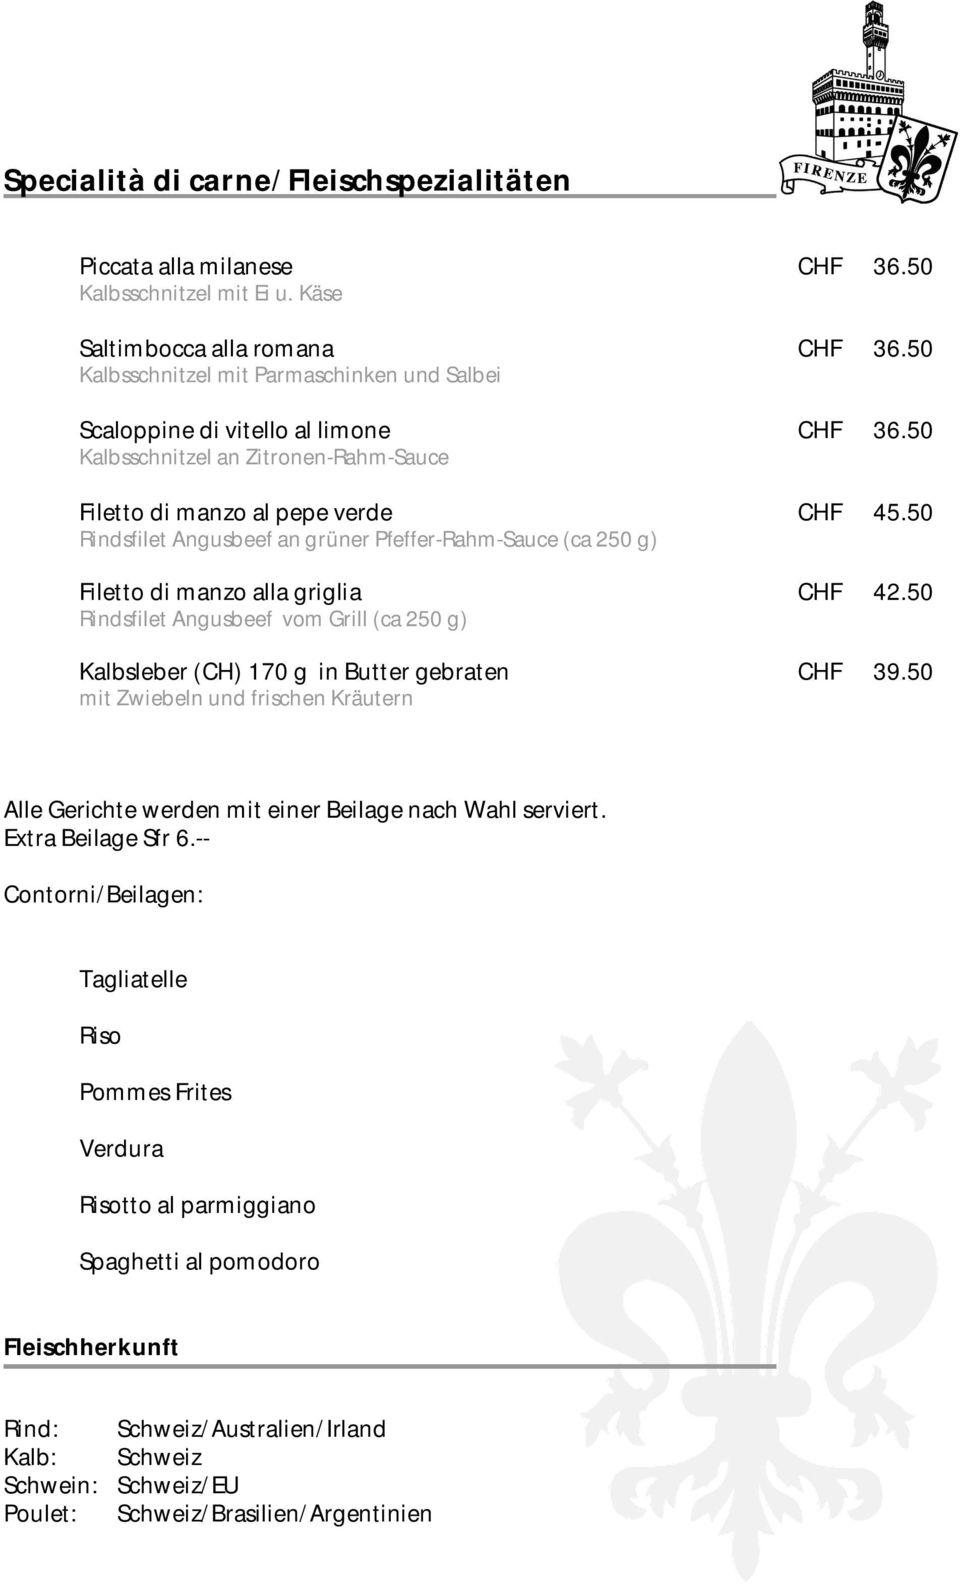 50 Rindsfilet Angusbeef an grüner Pfeffer-Rahm-Sauce (ca 250 g) Filetto di manzo alla griglia CHF 42.50 Rindsfilet Angusbeef vom Grill (ca 250 g) Kalbsleber (CH) 170 g in Butter gebraten CHF 39.